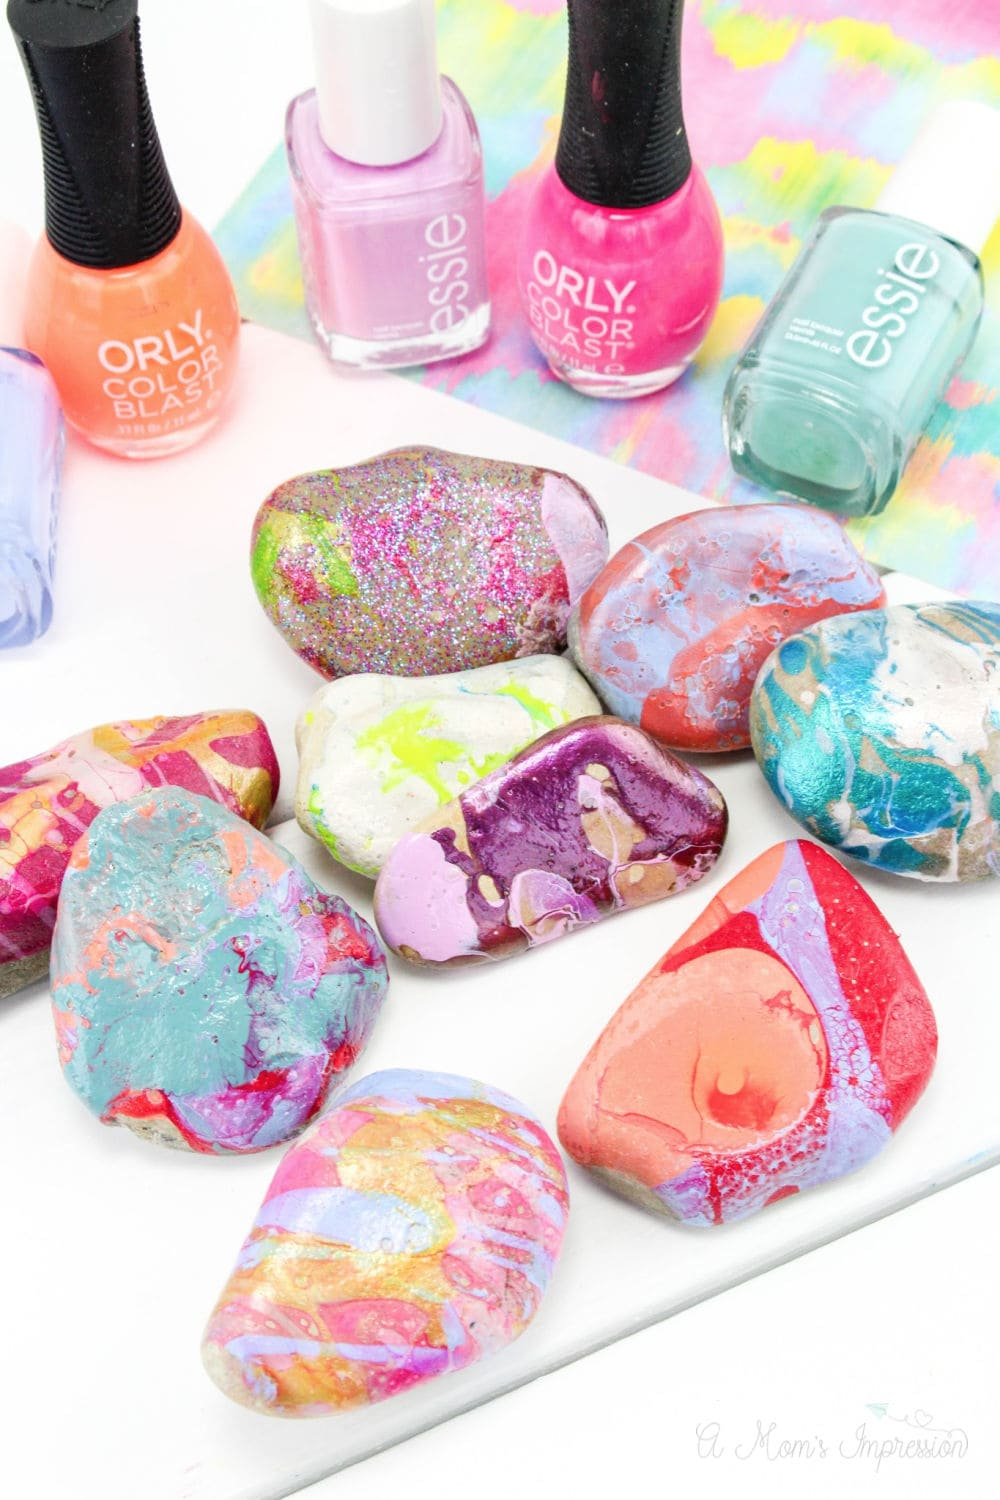 nail polish painted rocks with nail polish bottles sitting behind them